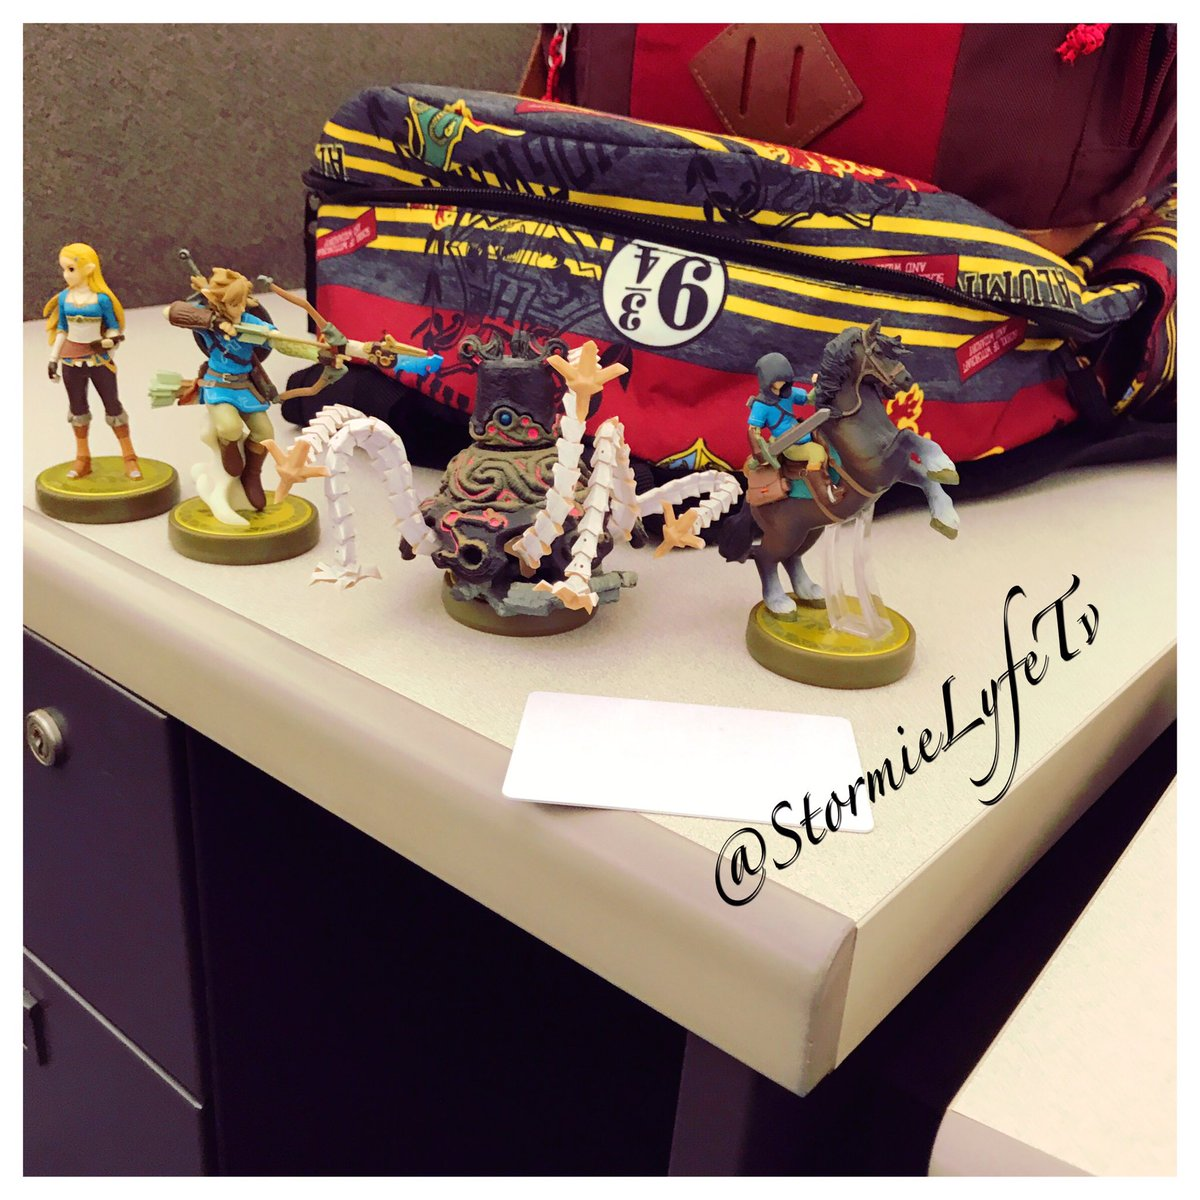 One of my menace through hooked me up. #amiibos #botw #loz #nintendoswitch<br>http://pic.twitter.com/jDd3C9t97A